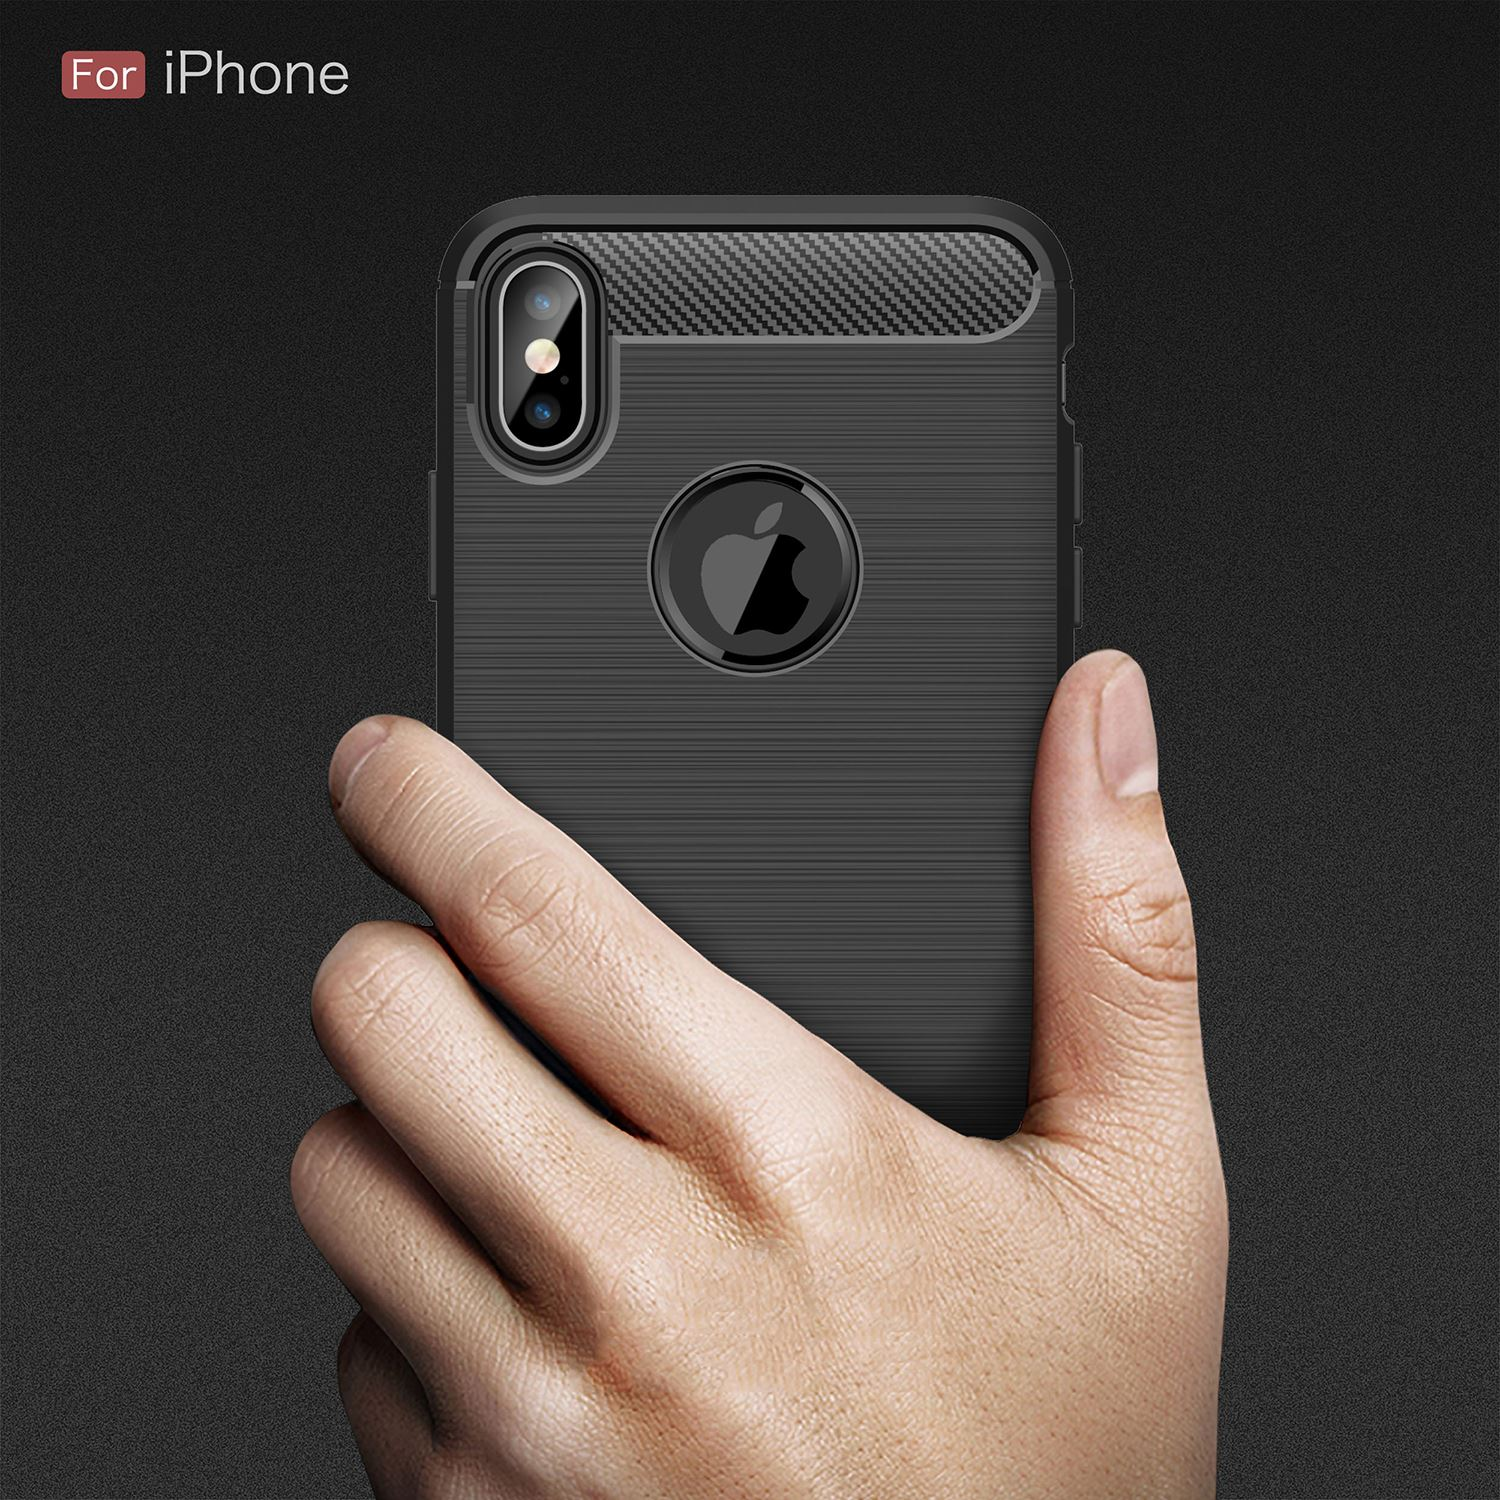 miniature 34 - For Apple iPhone XR Xs Max X 8 7 Plus 6 5 Se 2020 Case Cover New Phone Proof